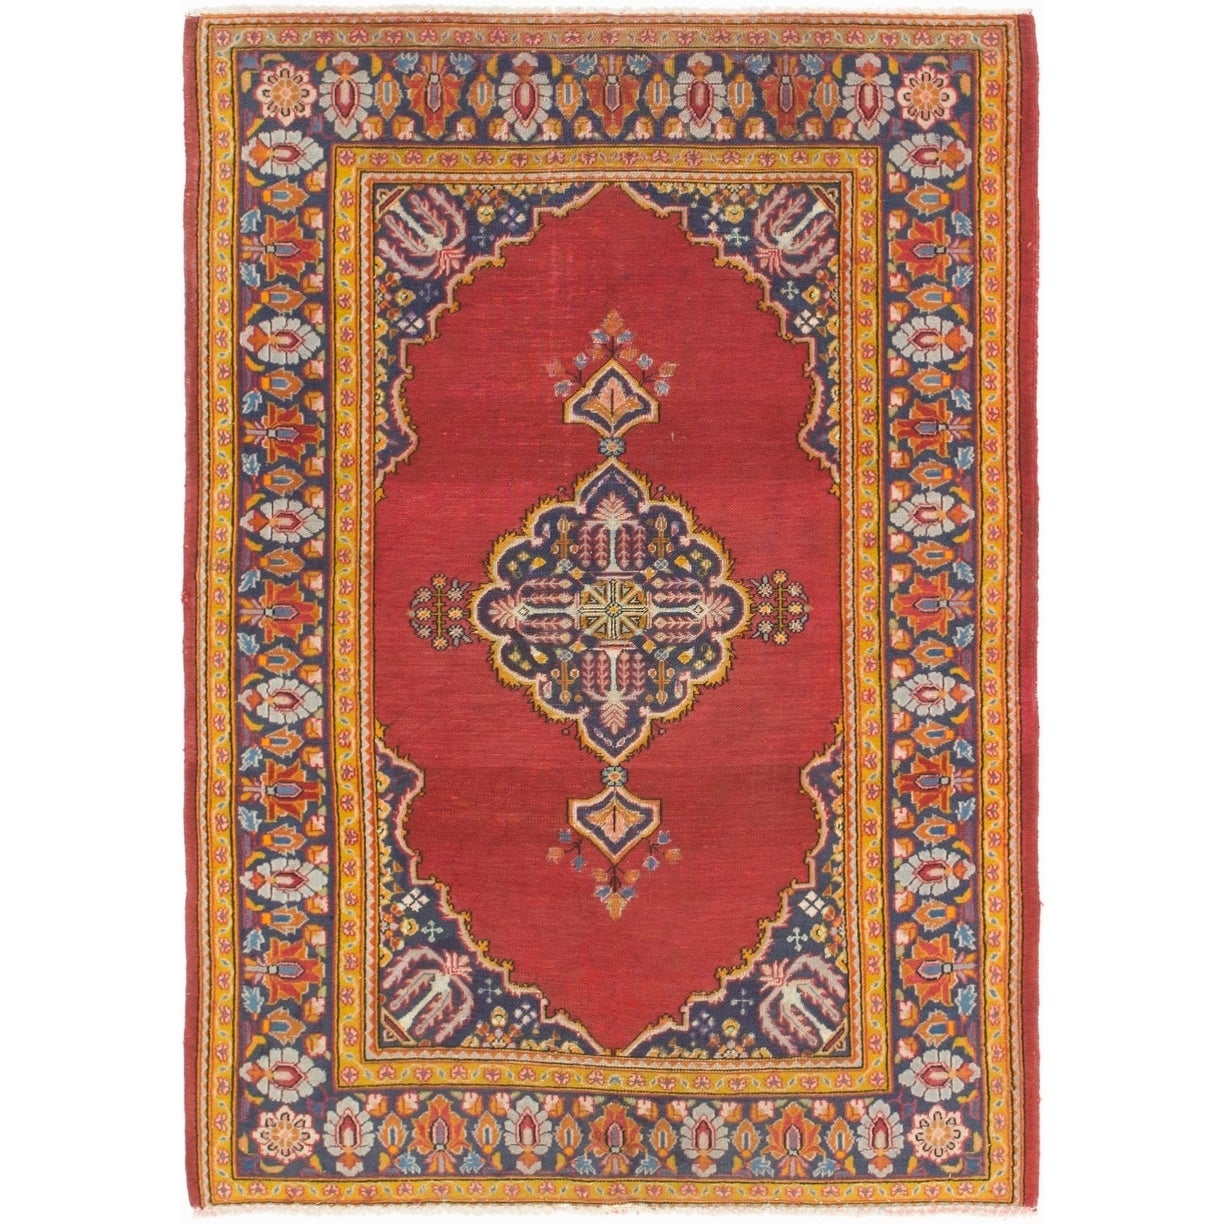 Hand Knotted Kashan Antique Silk & Wool Area Rug - 3 7 x 5 (Red - 3 7 x 5)